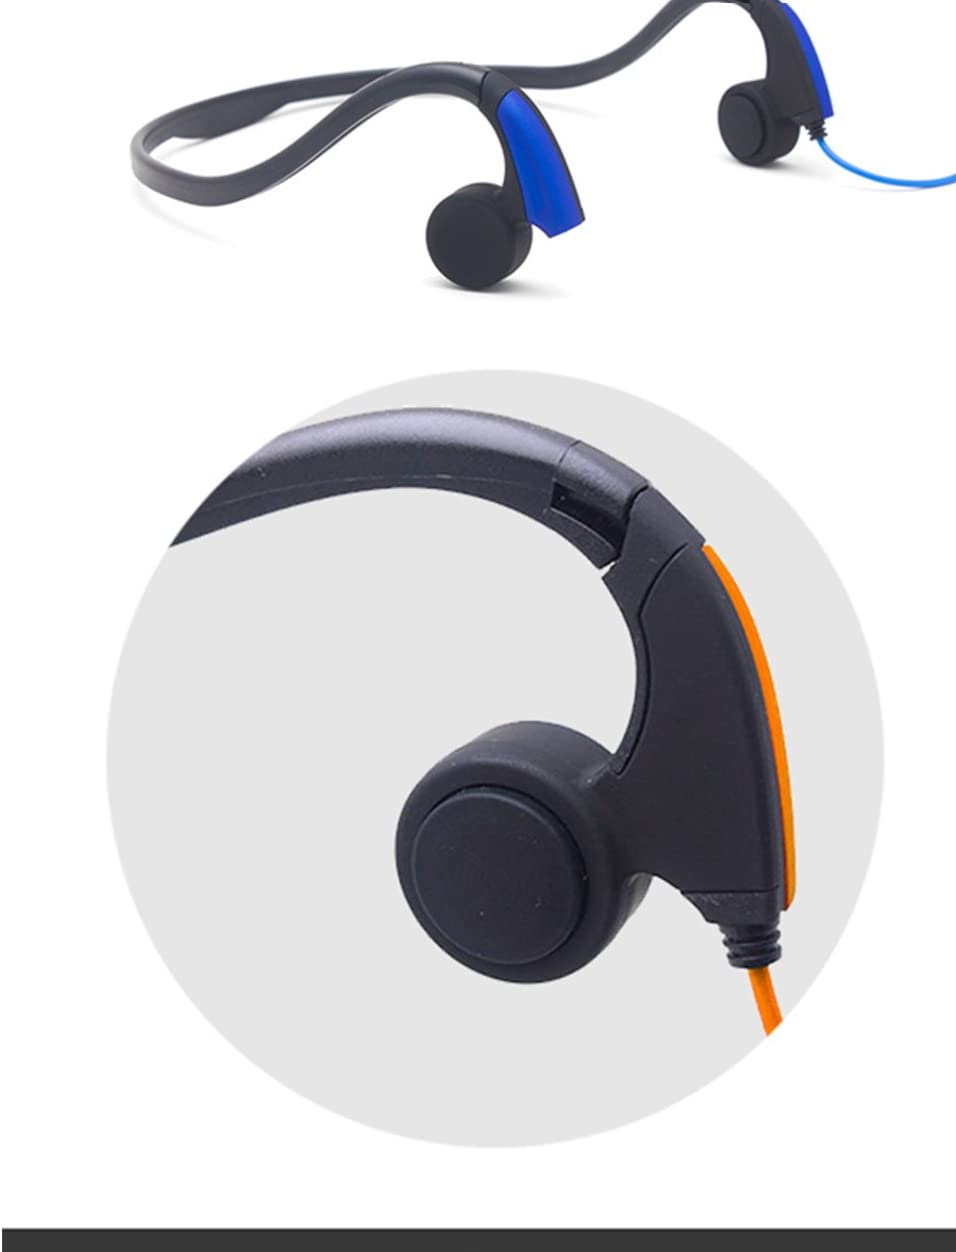 GZCRDZ Bone Conduction Headphones with Microphone Stereo Open-Ear Sport Headphone with Noise Reduction Microphone (Orange)